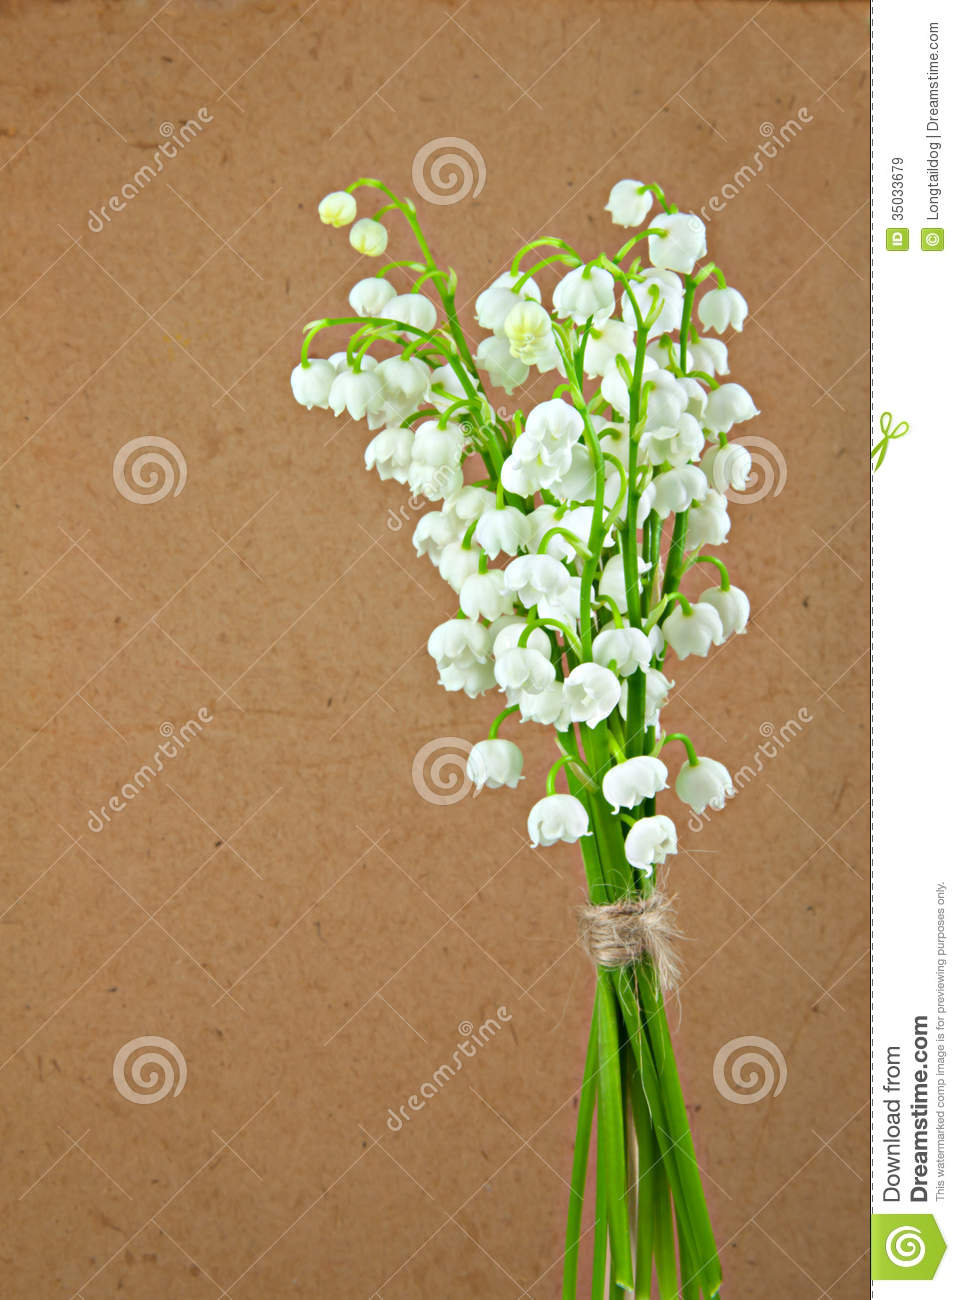 Flowers of lily of the valley stock image image of blossom valley flowers of lily of the valley izmirmasajfo